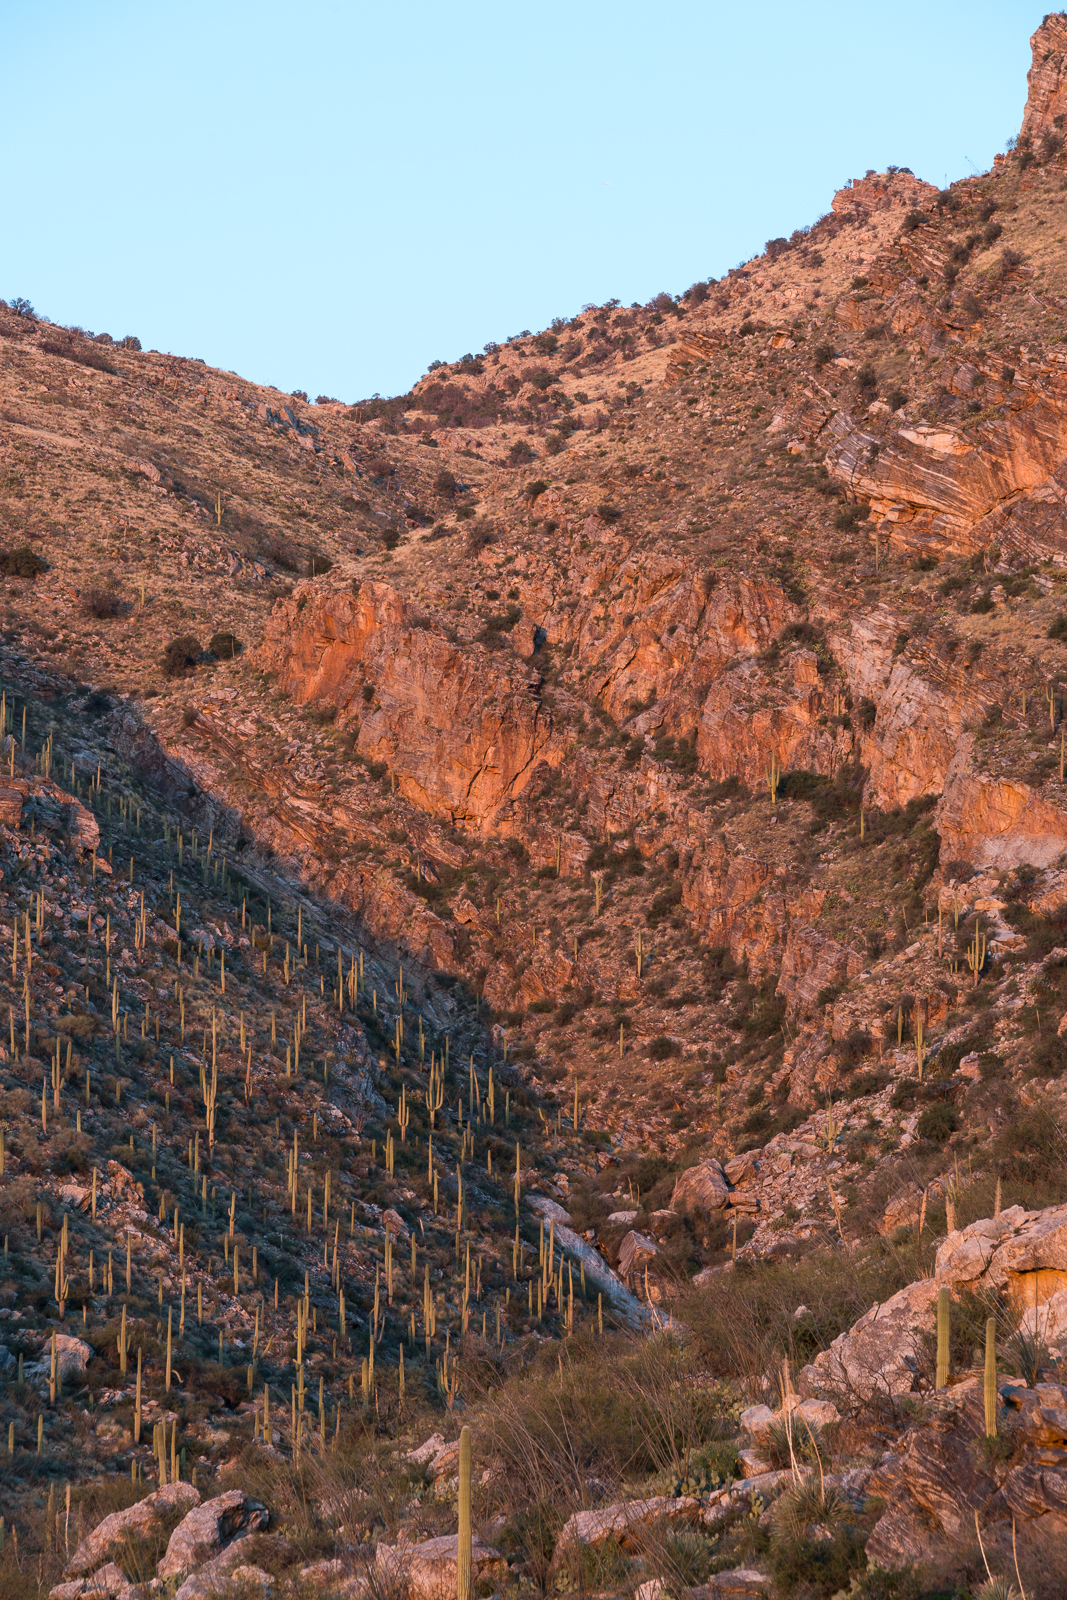 Sunset in Pontatoc Canyon. February 2016.